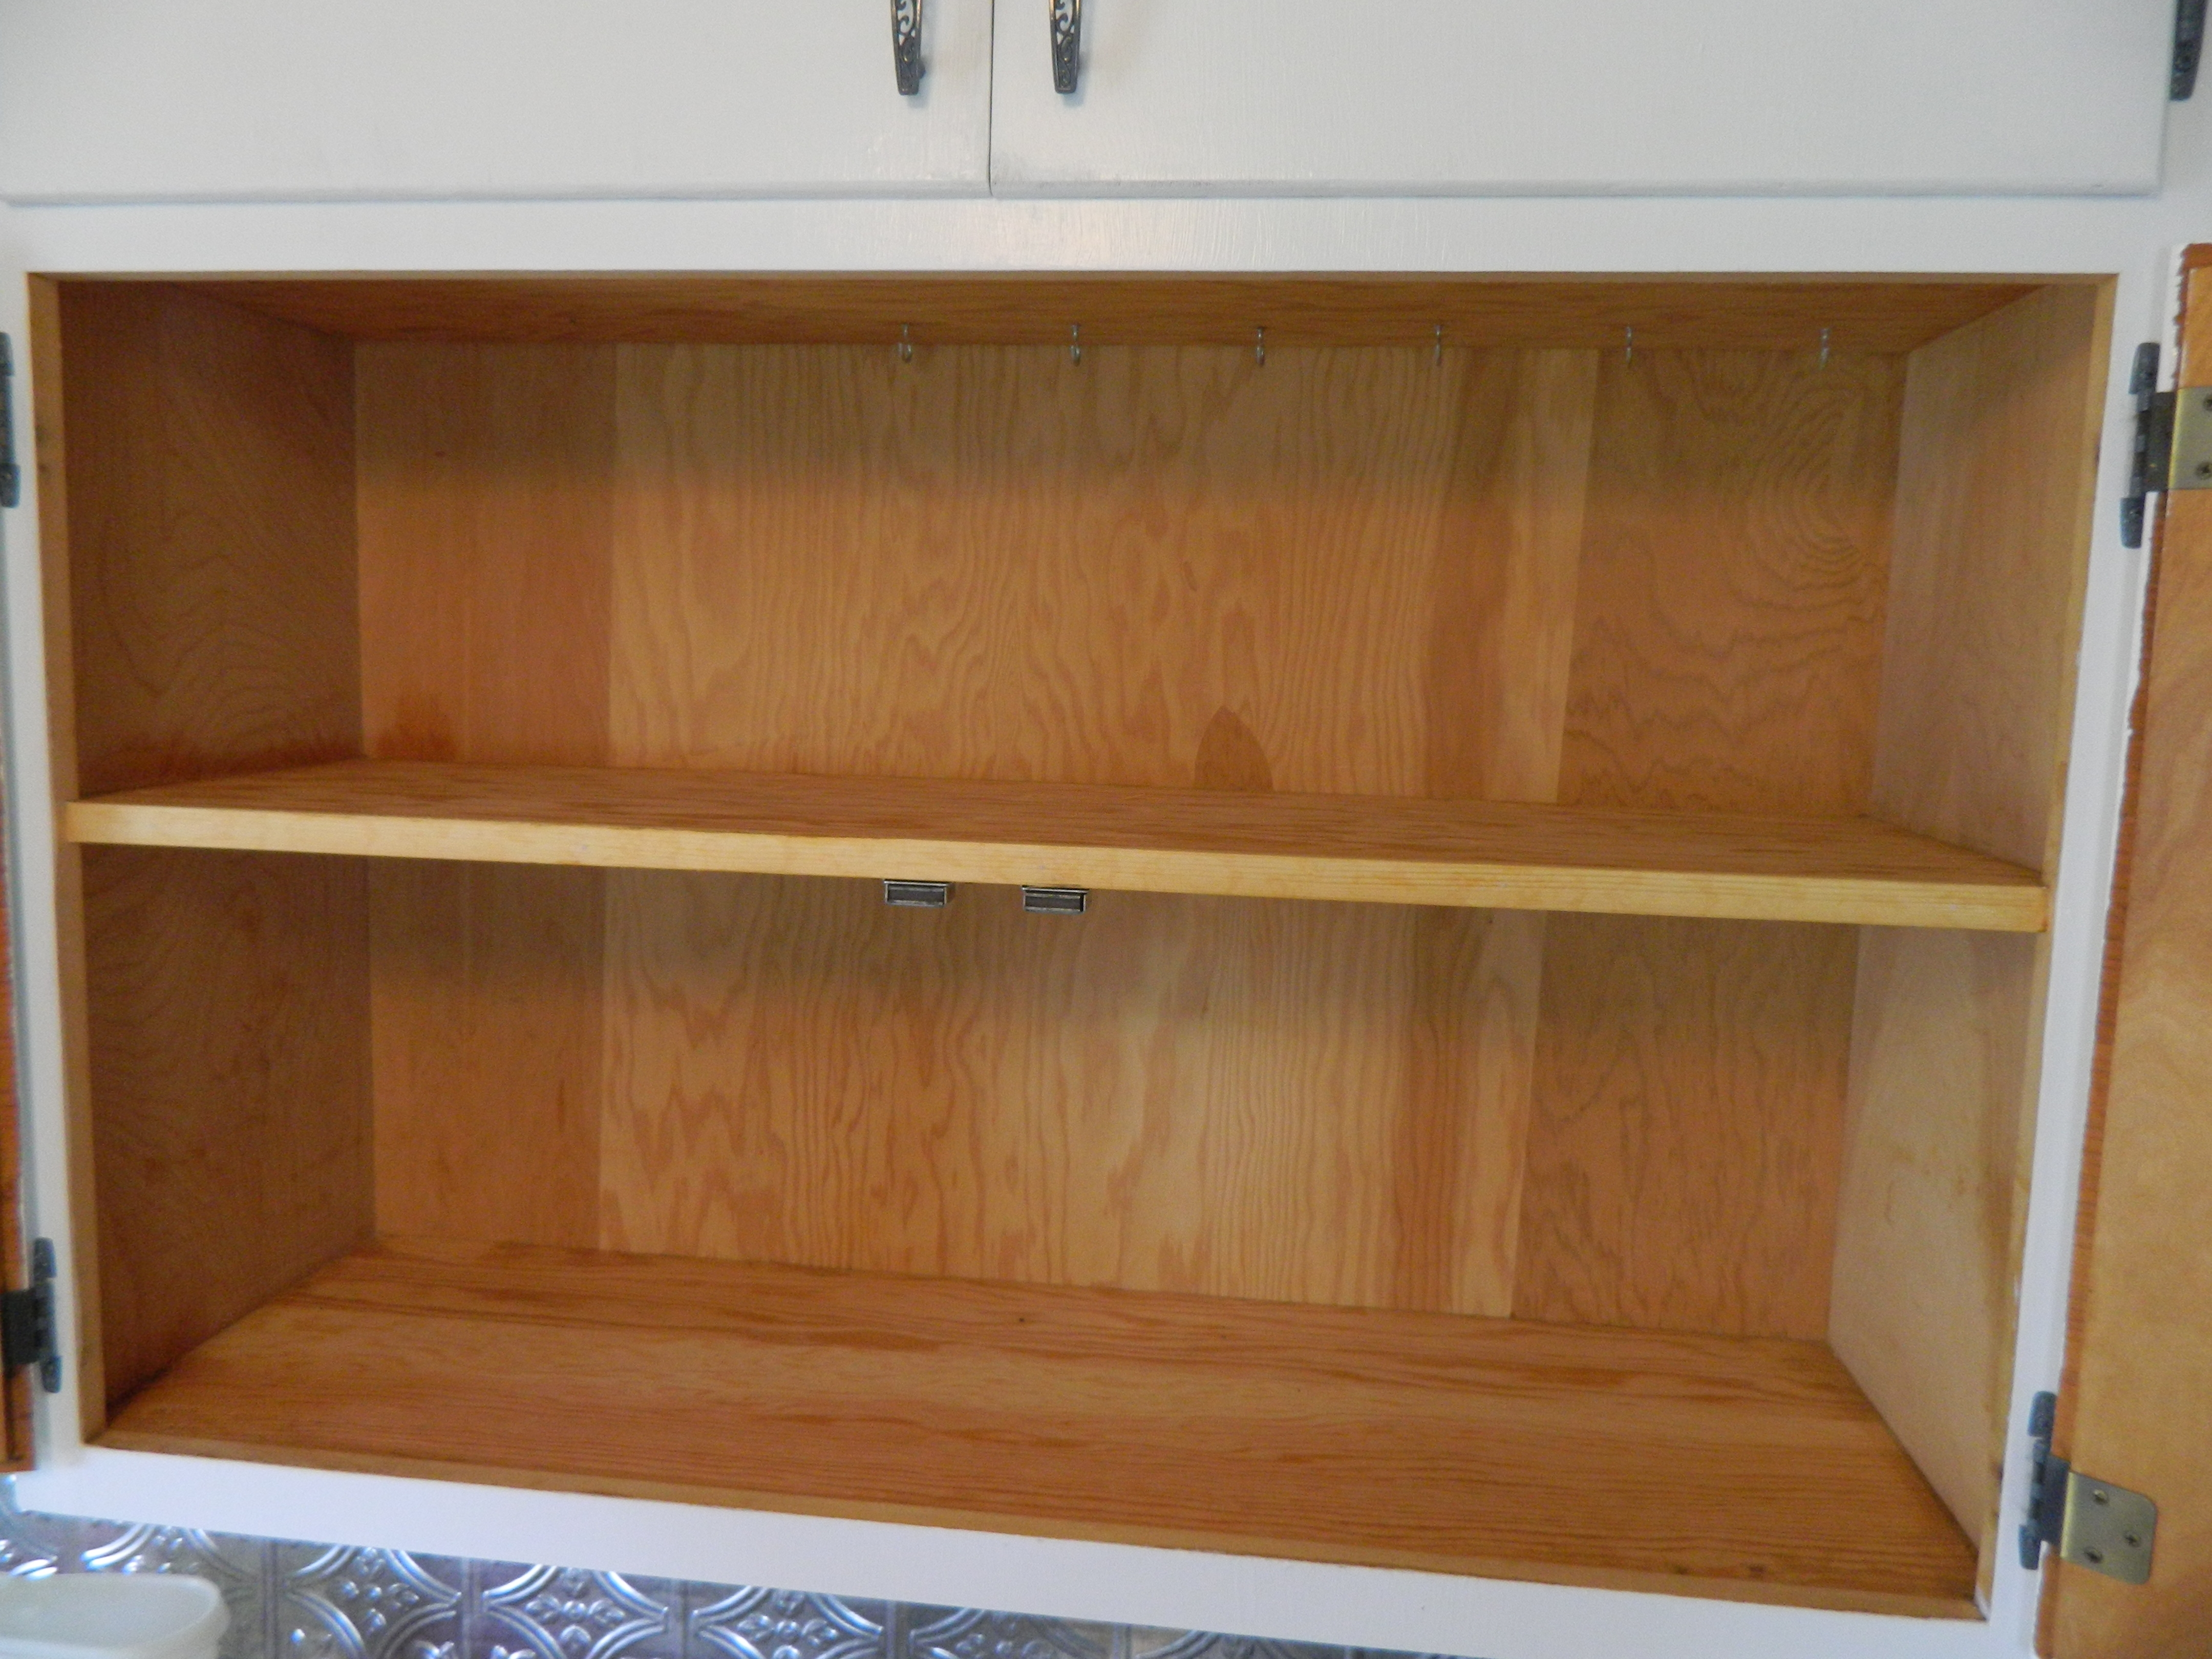 Contact Paper Kitchen Cabinet Shelves